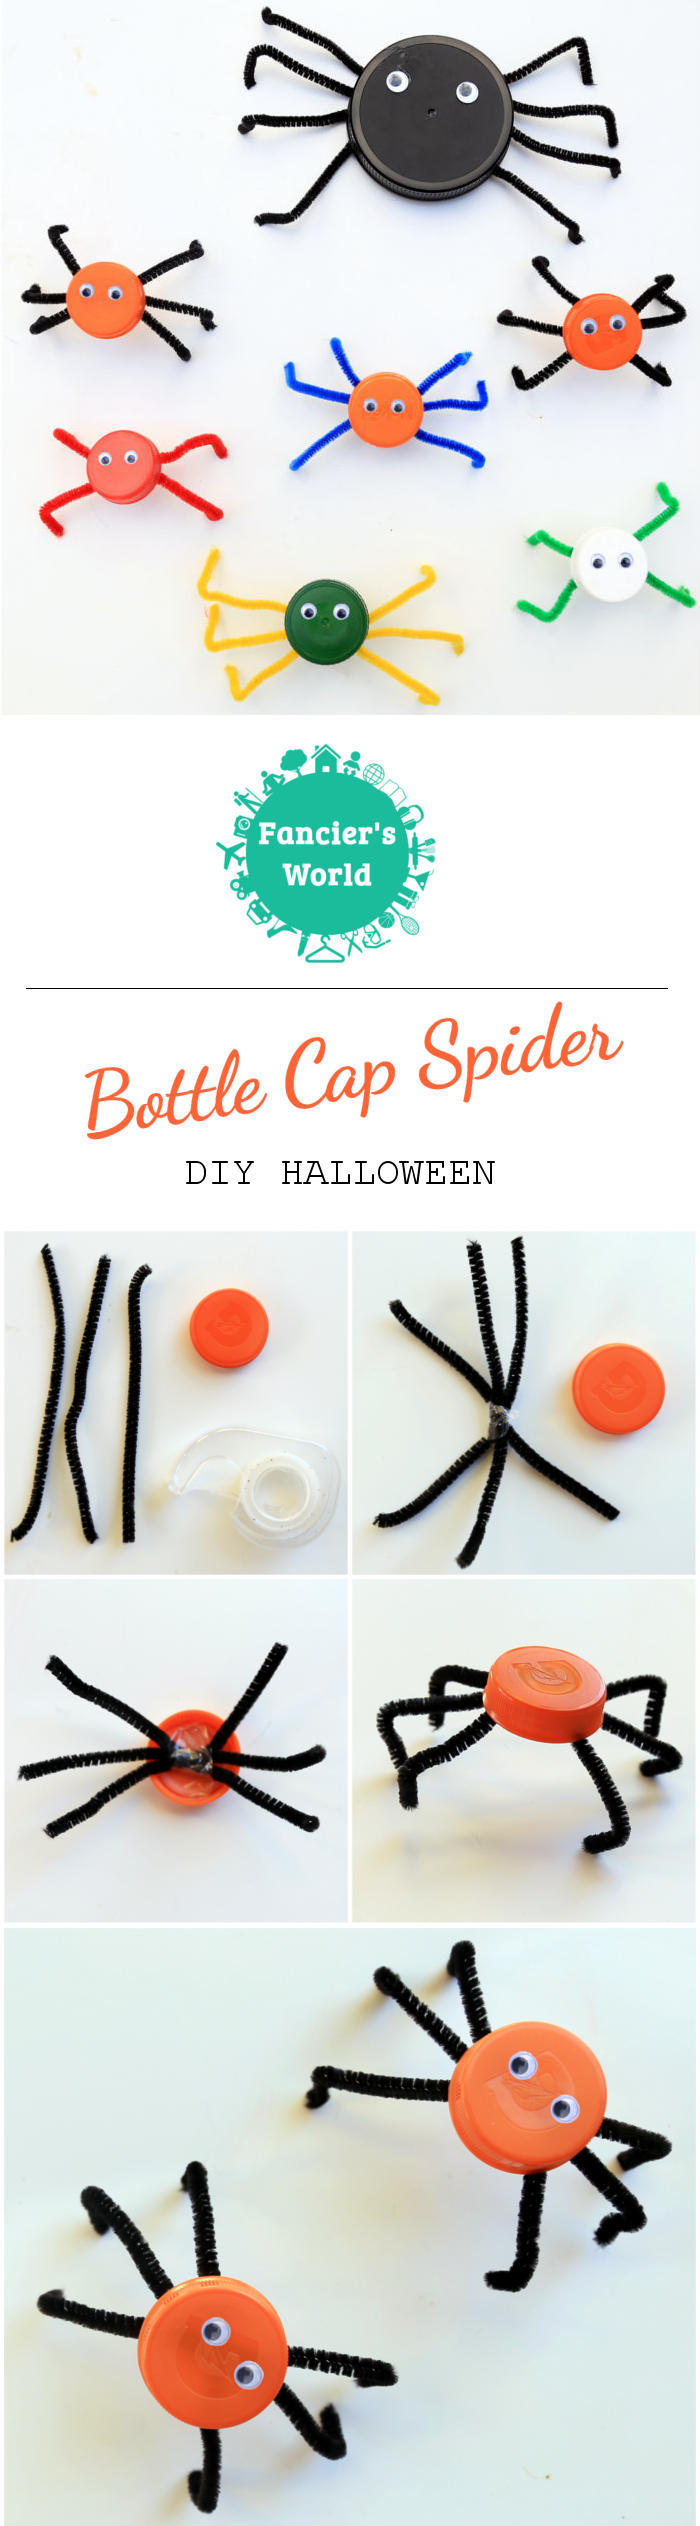 DIY Halloween - Steps for making Bottle Cap Spiders!